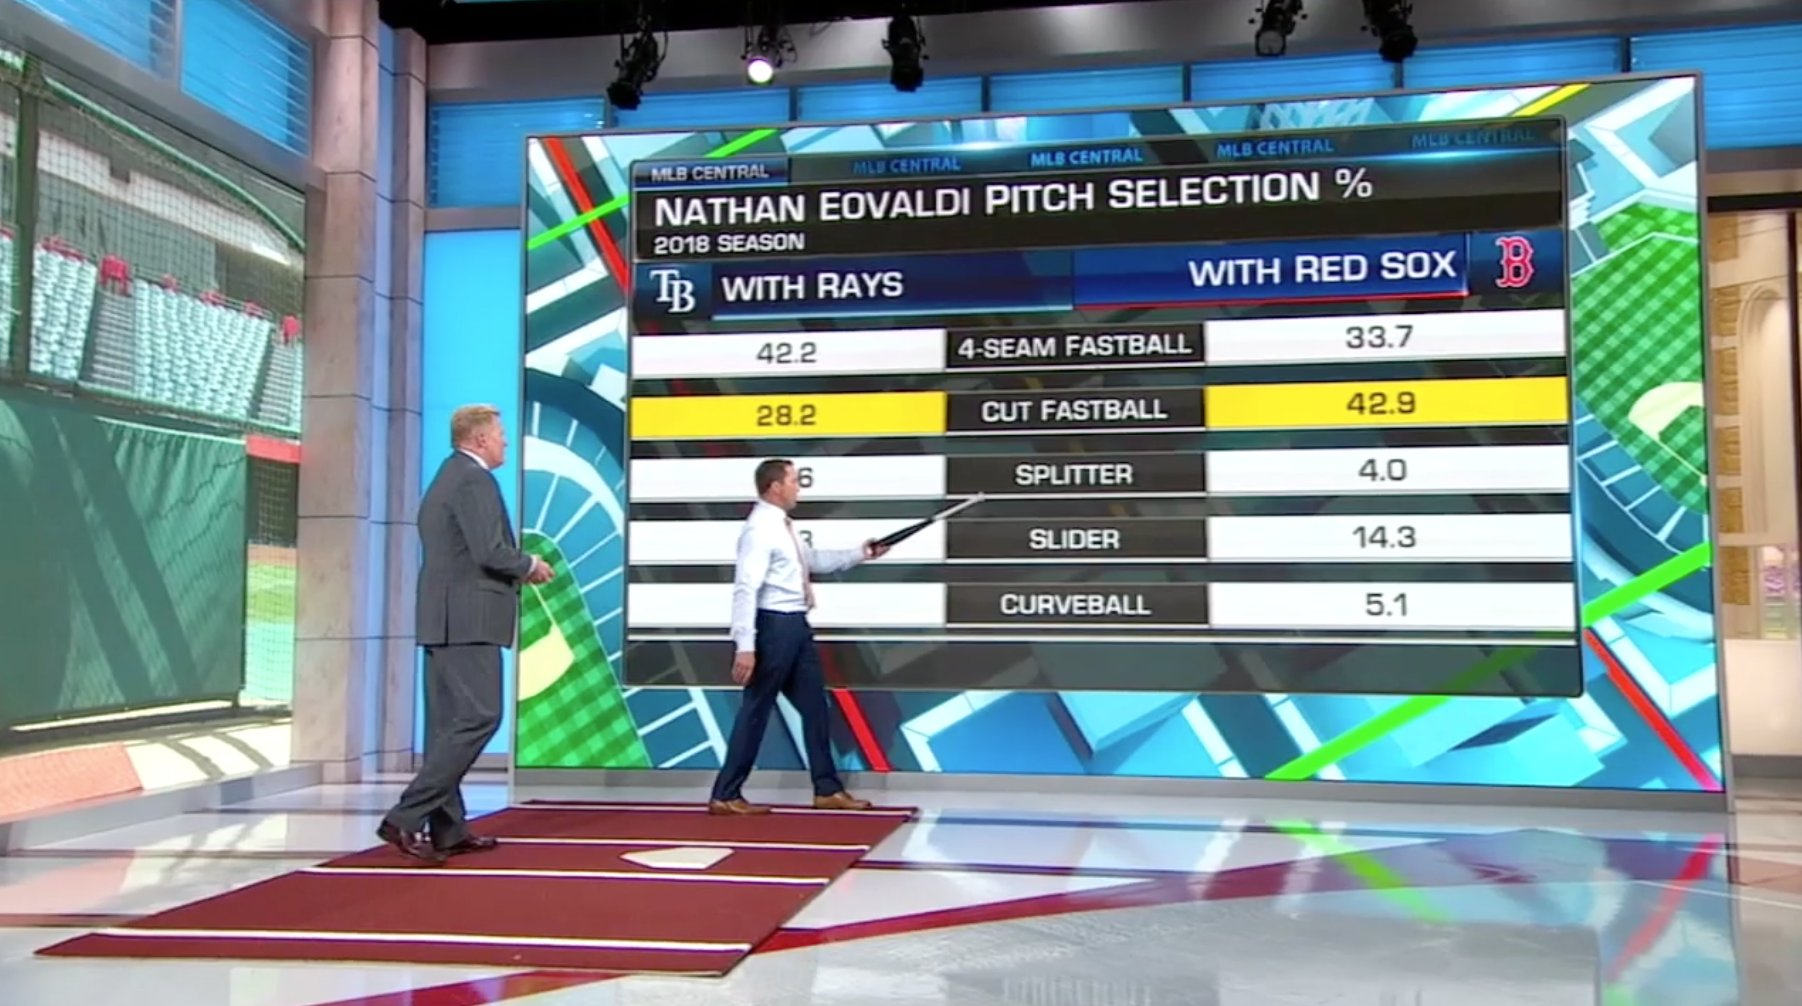 Nathan Eovaldi has been a special addition for Alex Cora and the @RedSox. #MLBCentral https://t.co/Ys4aQHOVv4